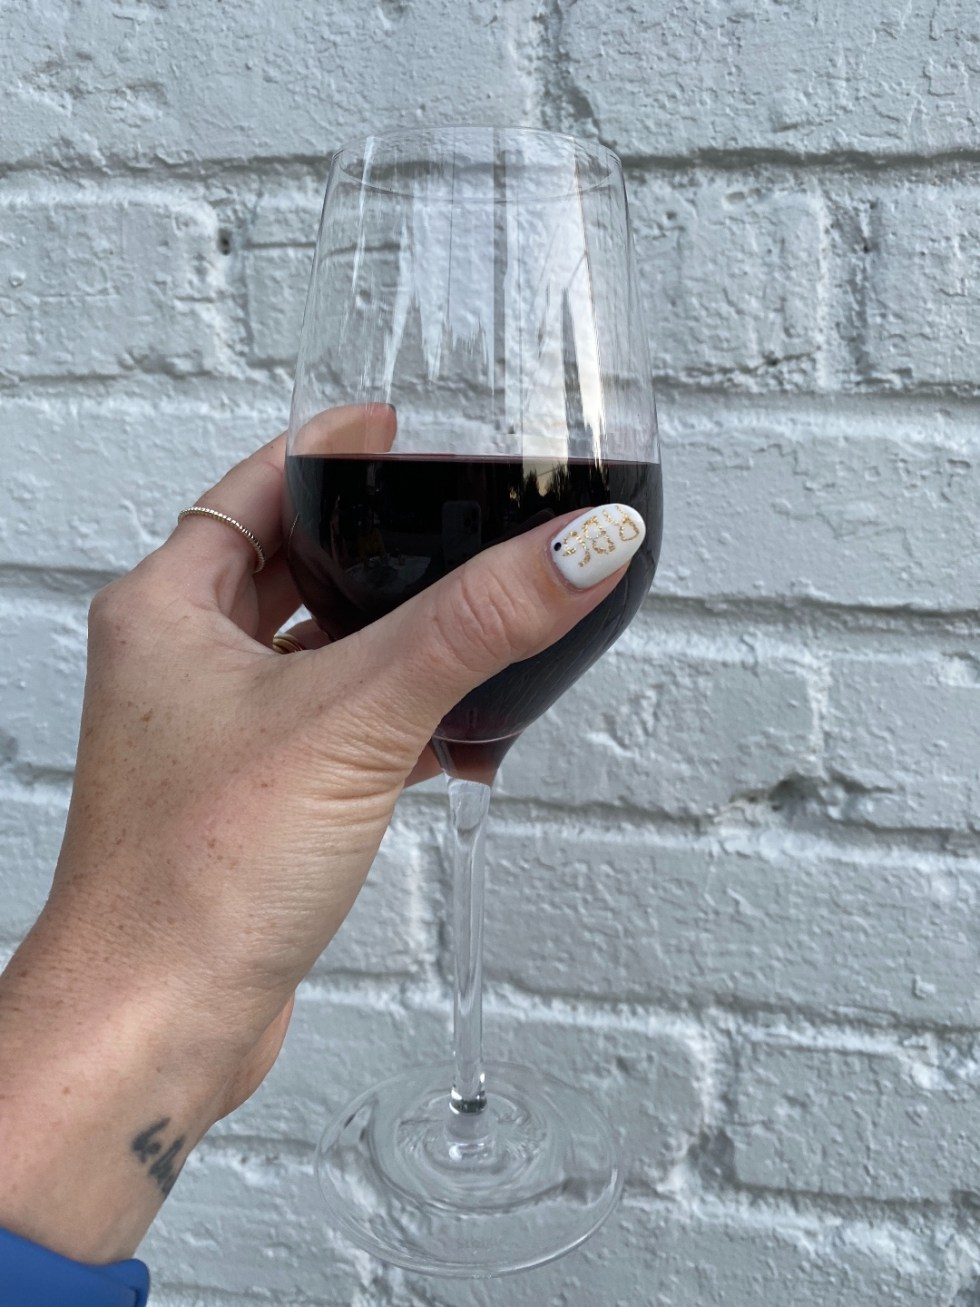 NC Favorites: 5 Warm Restaurants with Patios in the Triangle - I'm Fixin' To - @mbg0112 |Restaurants with Patios in the Triangle by popular NC lifestyle blog, I'm Fixin' To: image of a woman holding a glass of red wine.